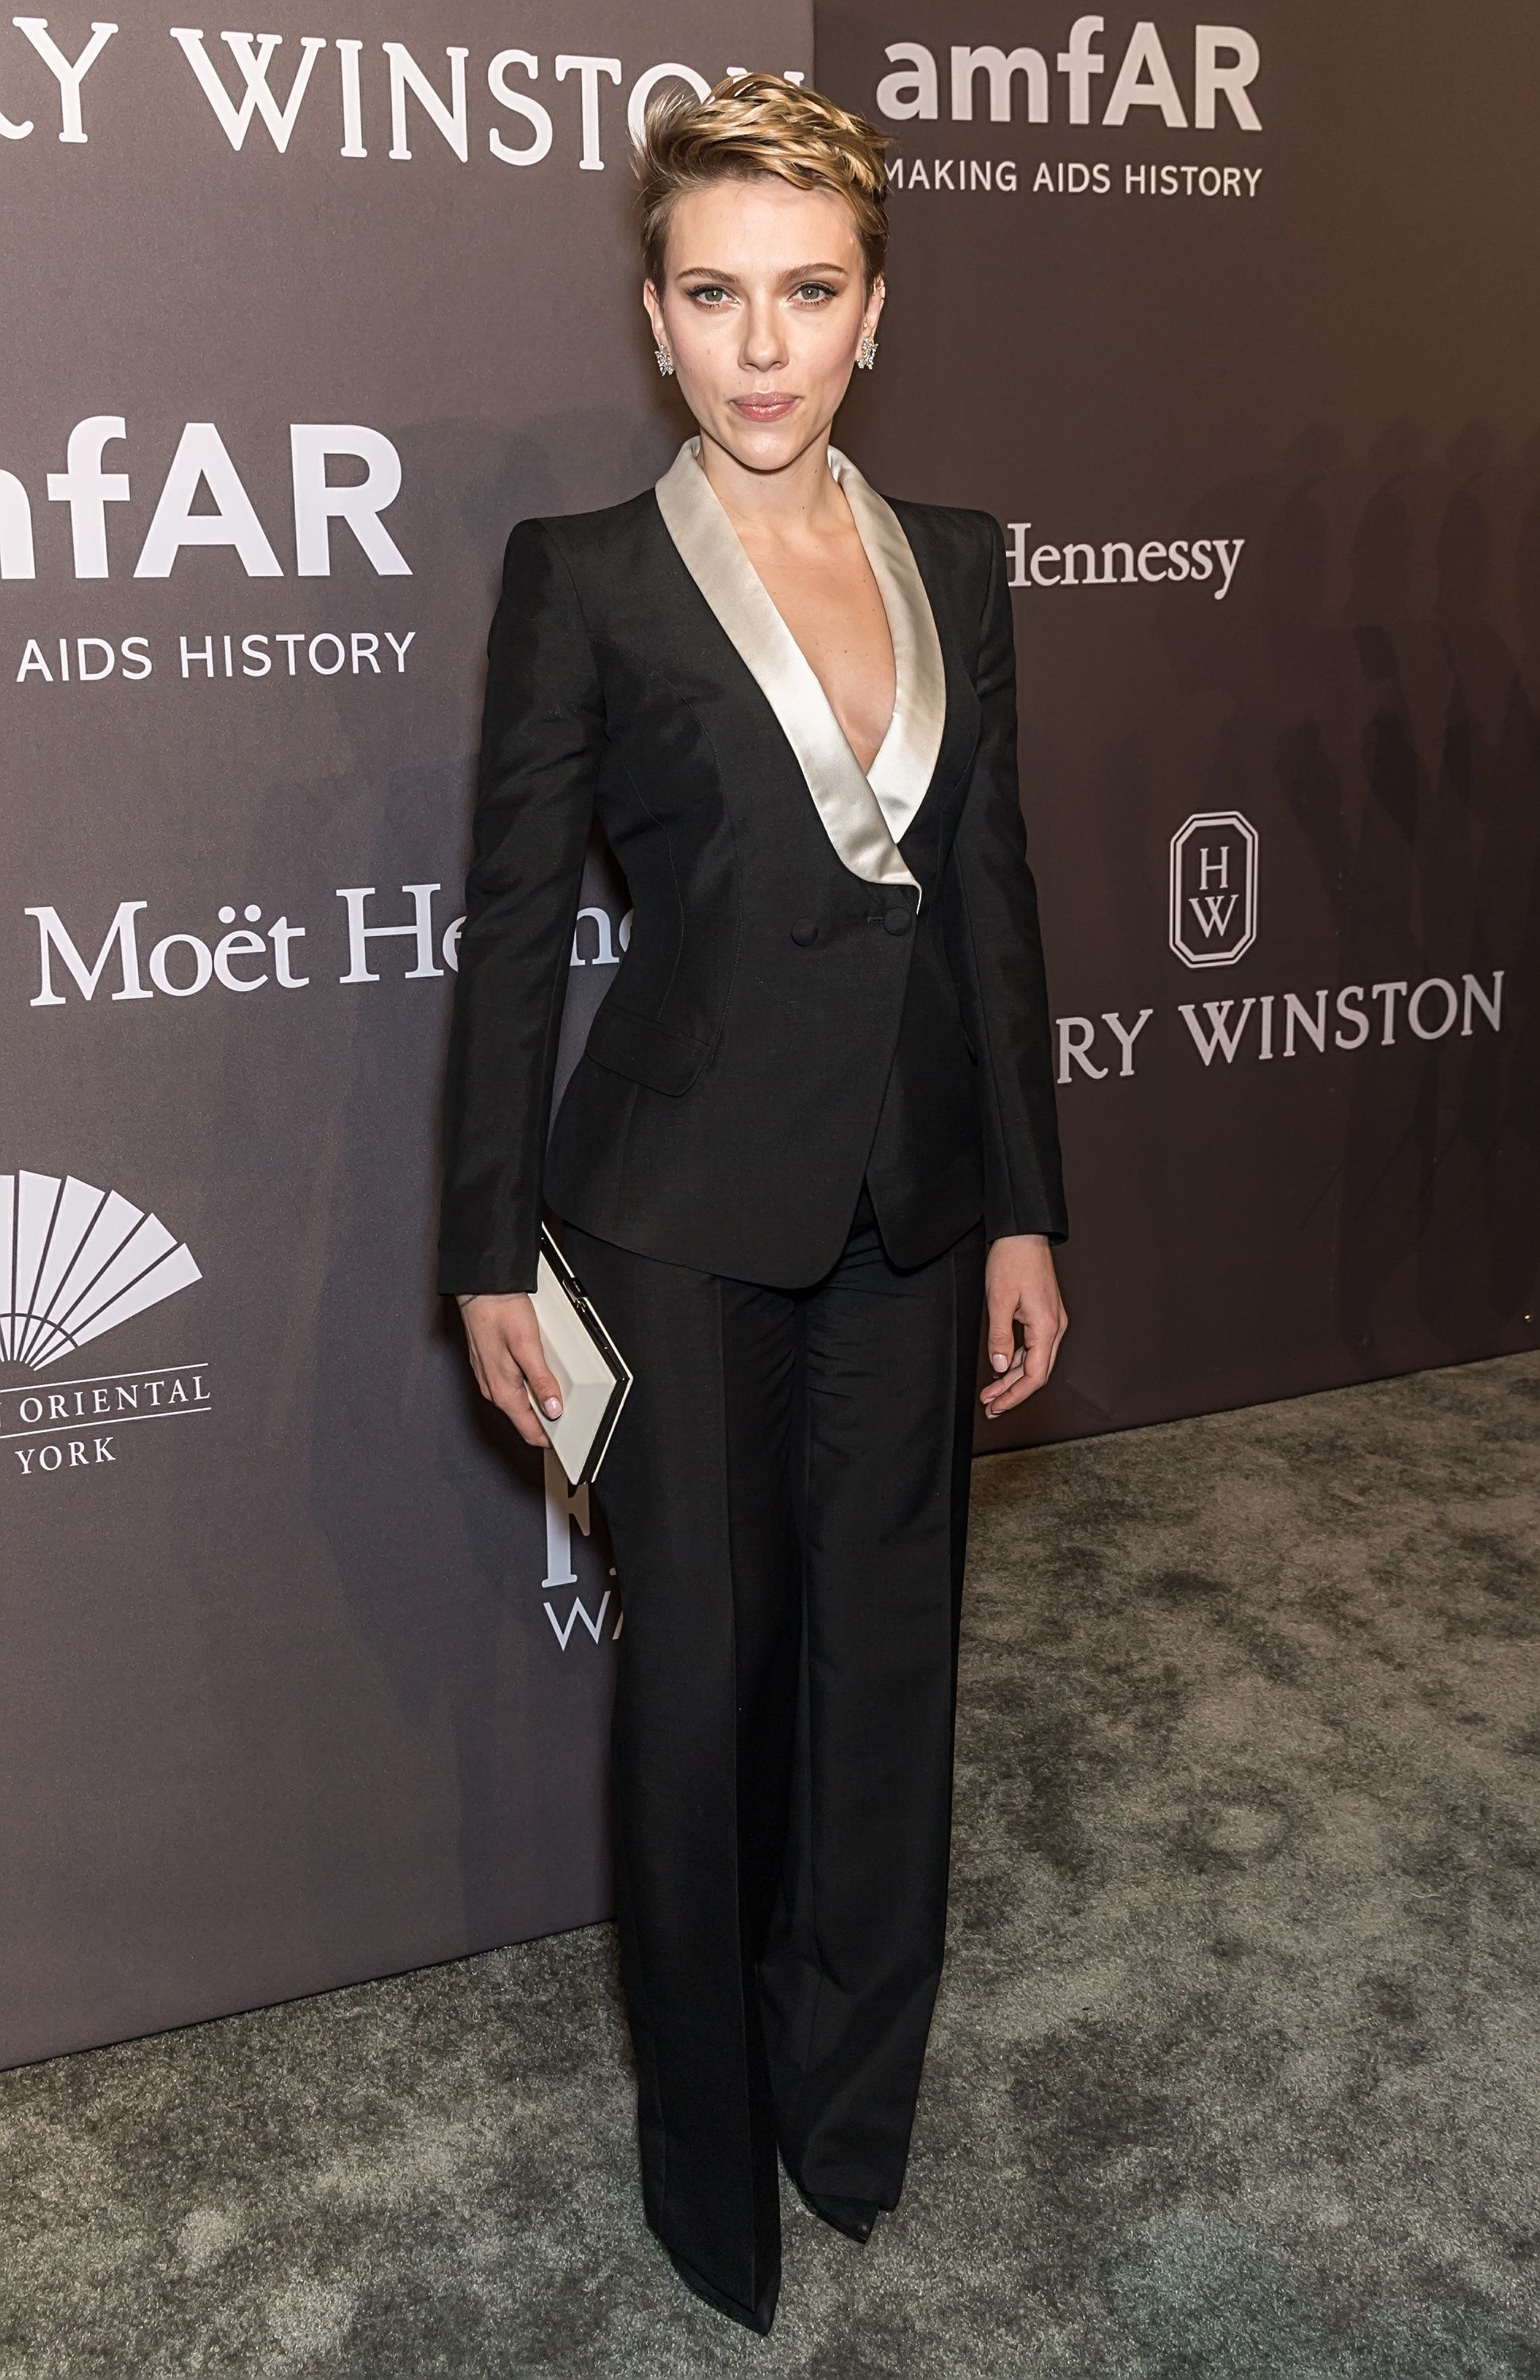 AmfAR Gala 2017: All The Best Dressed Celebs And Models On The Red